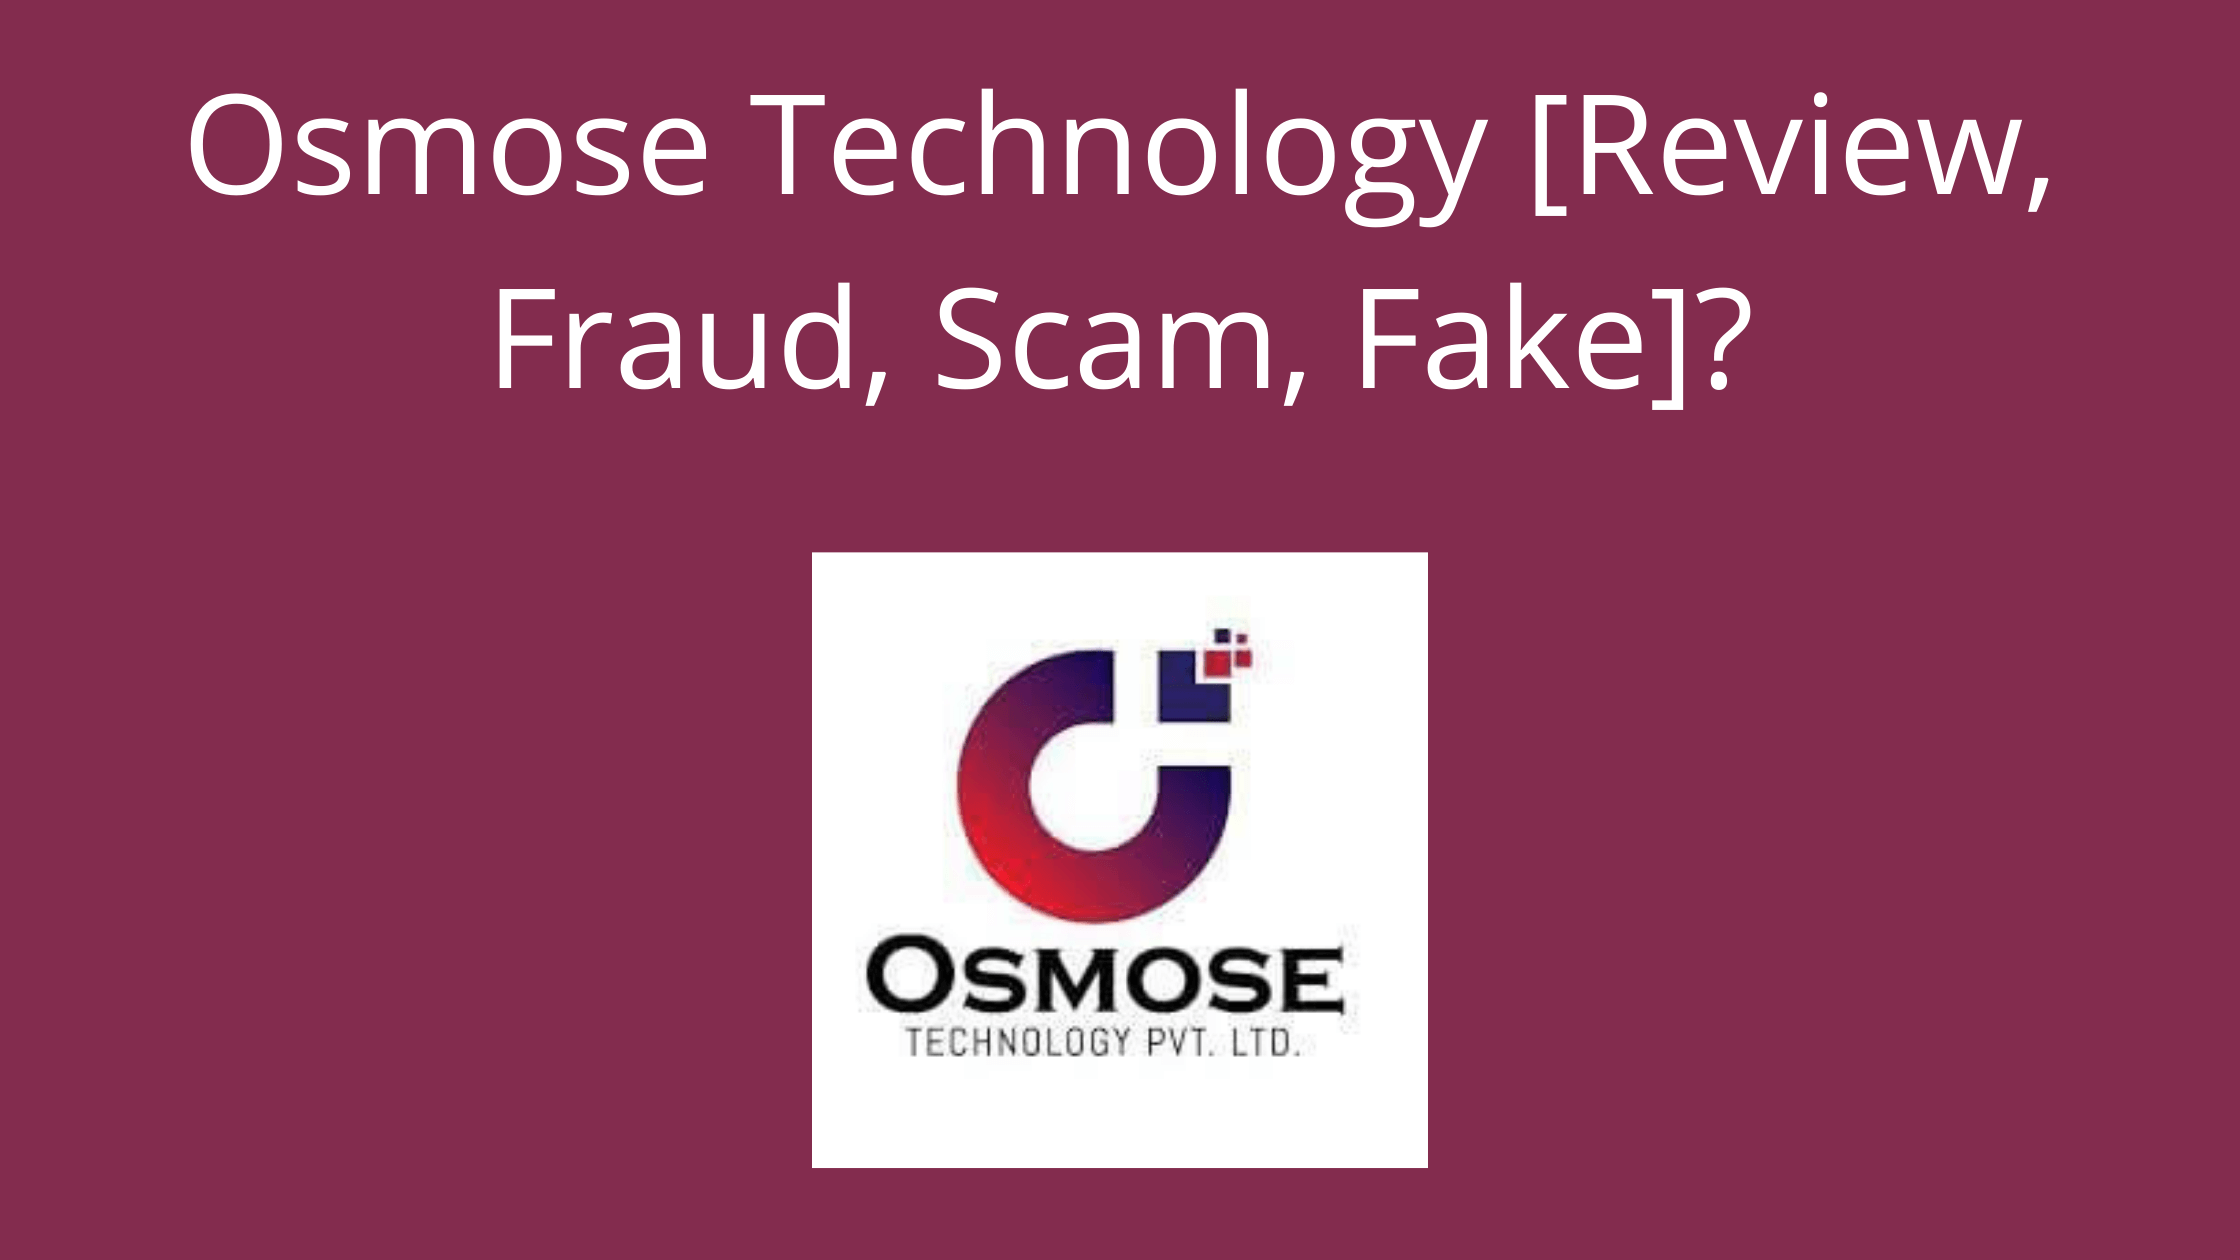 Osmose-Technology-Review-Fraud-Scam-Fake